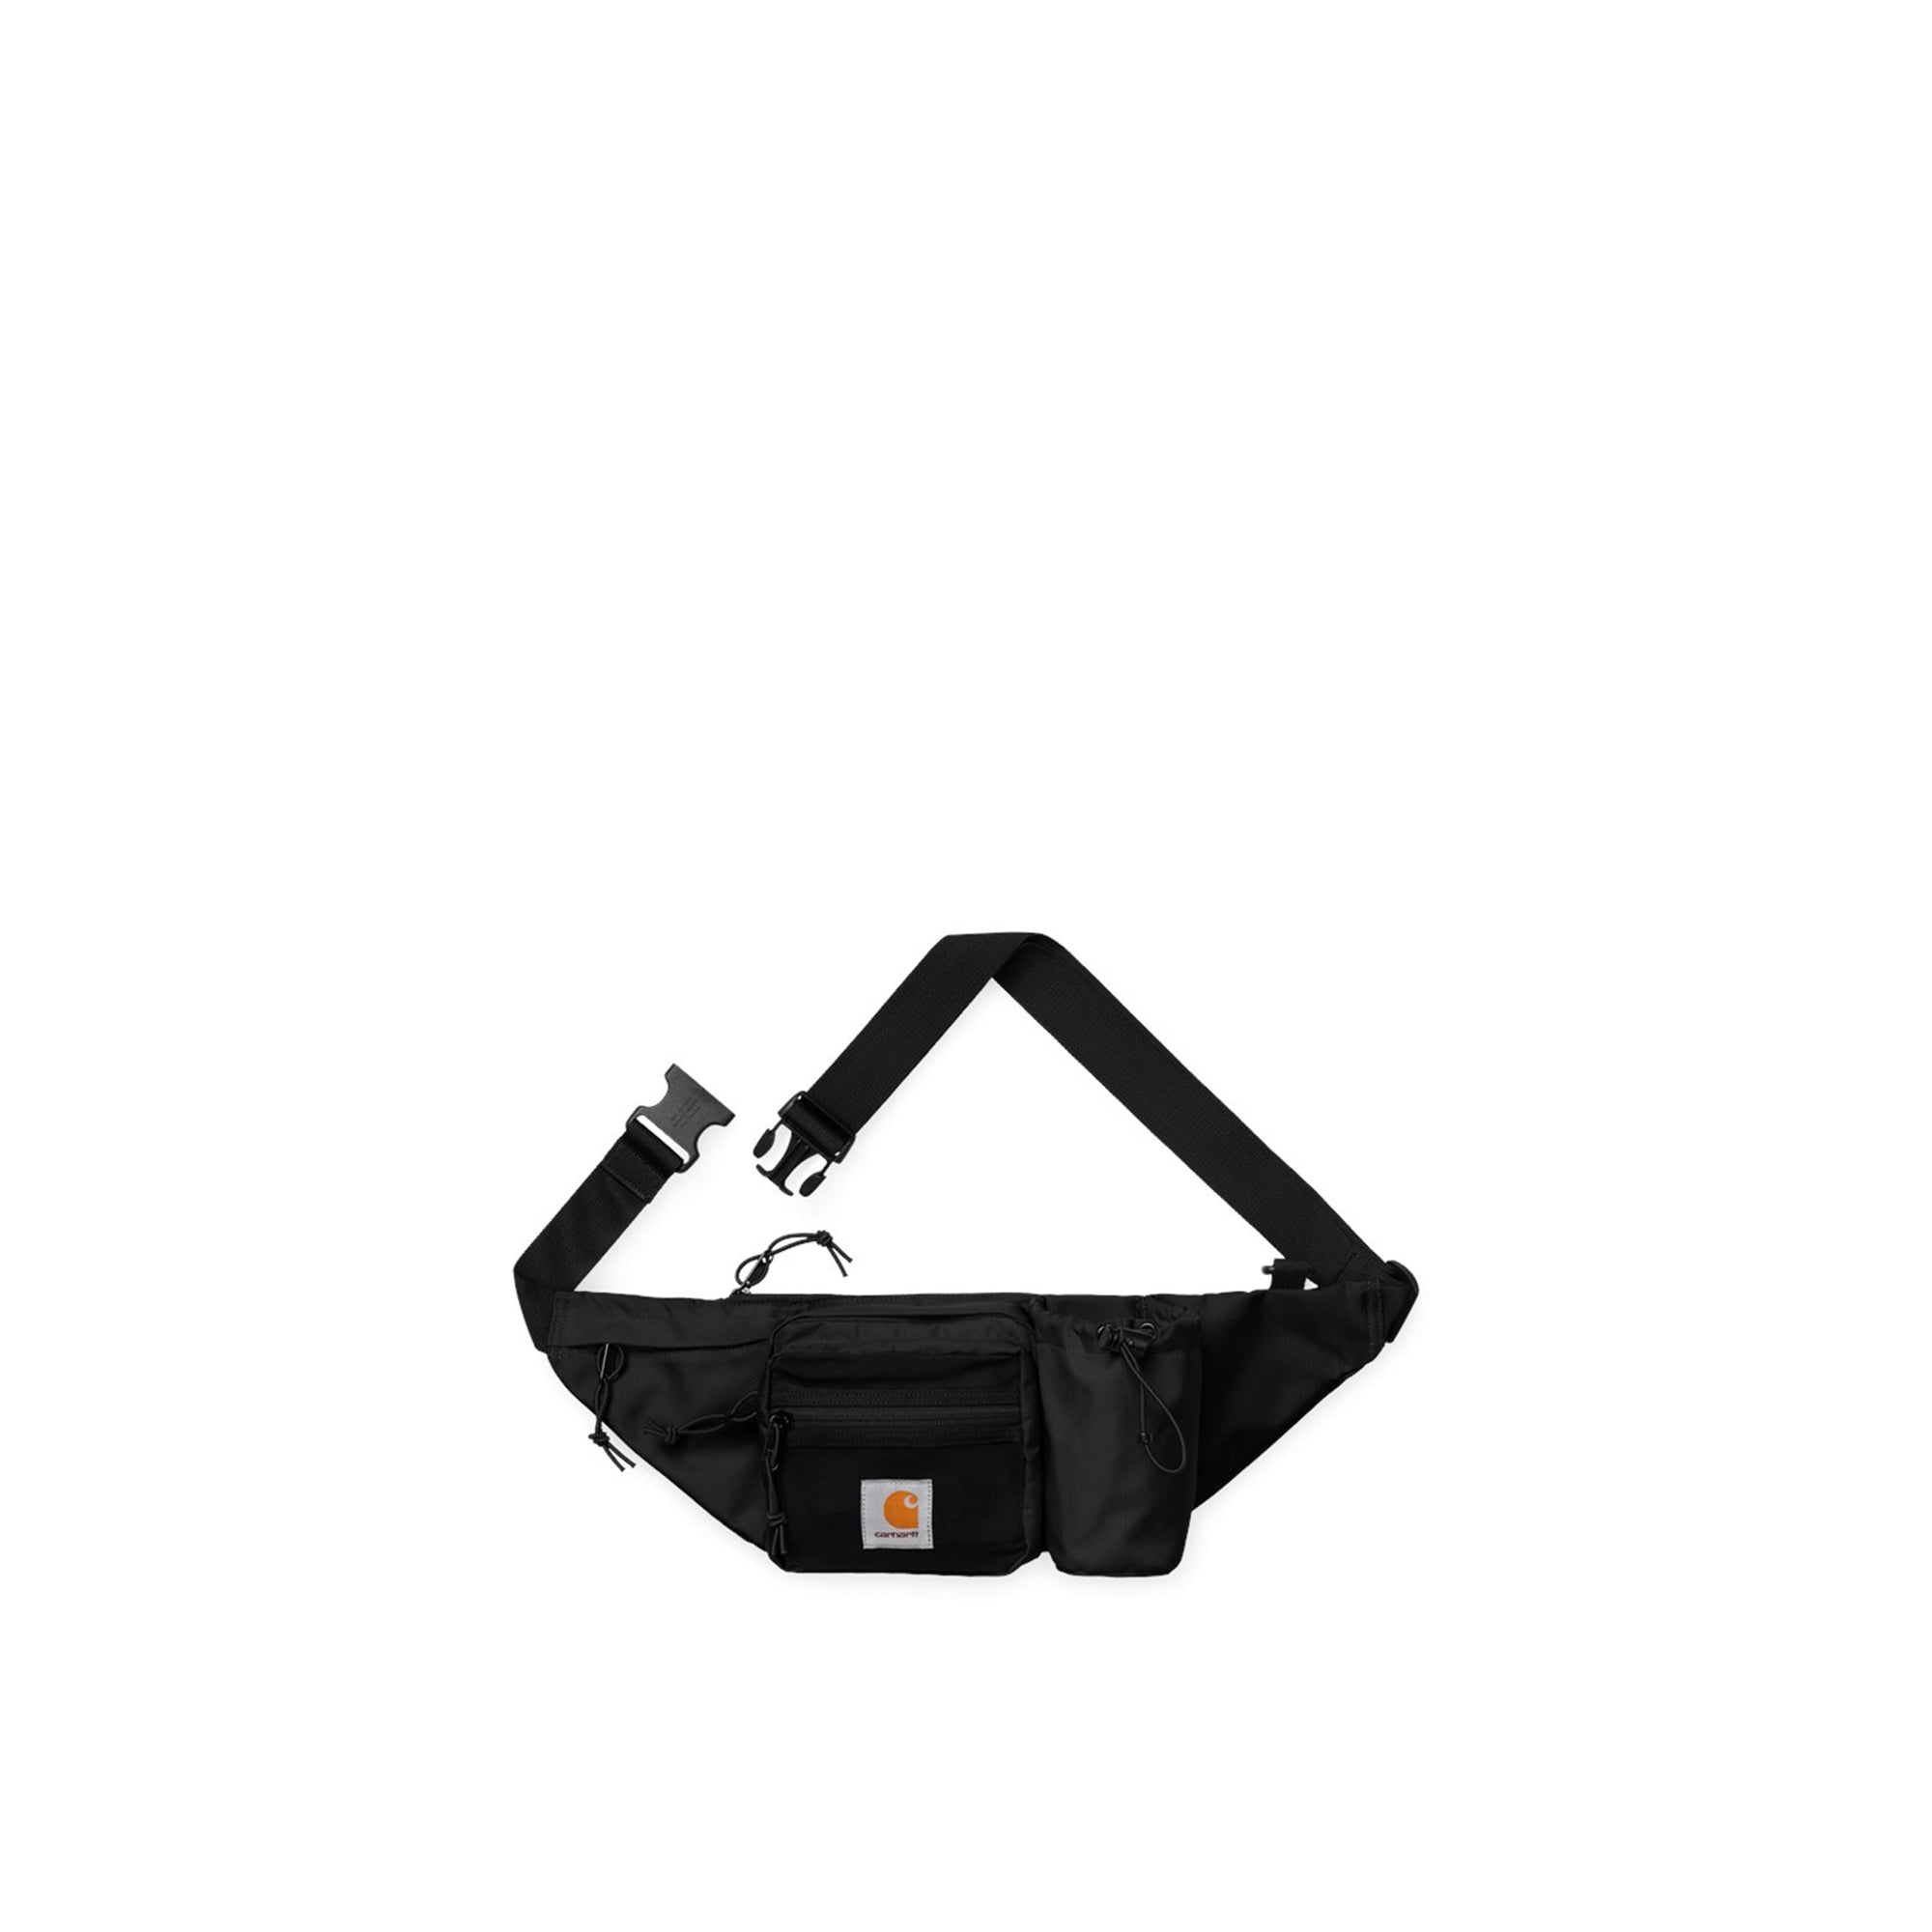 Carhartt WIP Delta Hip Bag: Black - The Union Project